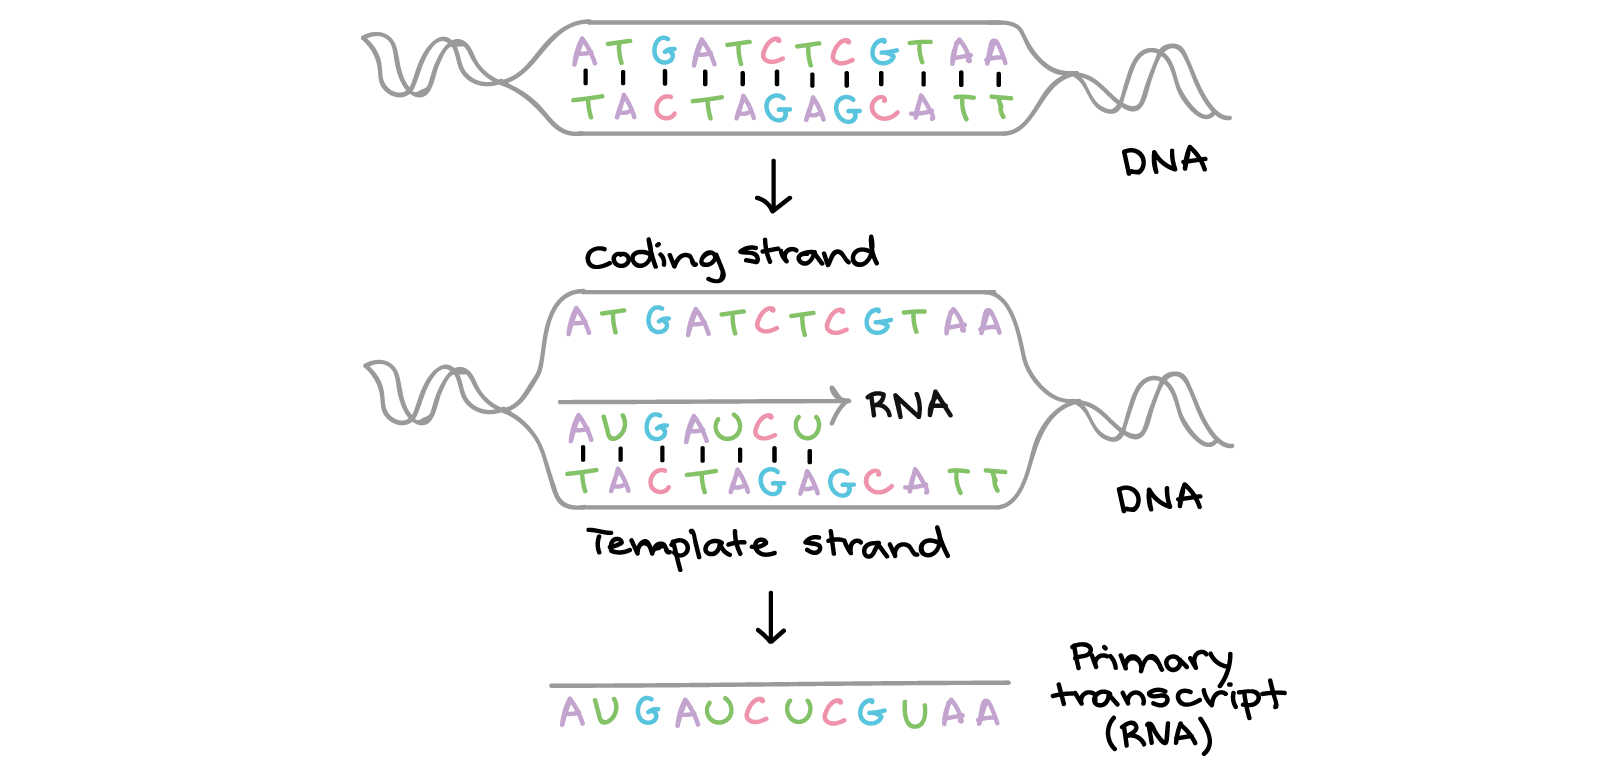 hight resolution of the two strands of dna have the following sequences 5 atgatctcgtaa 3